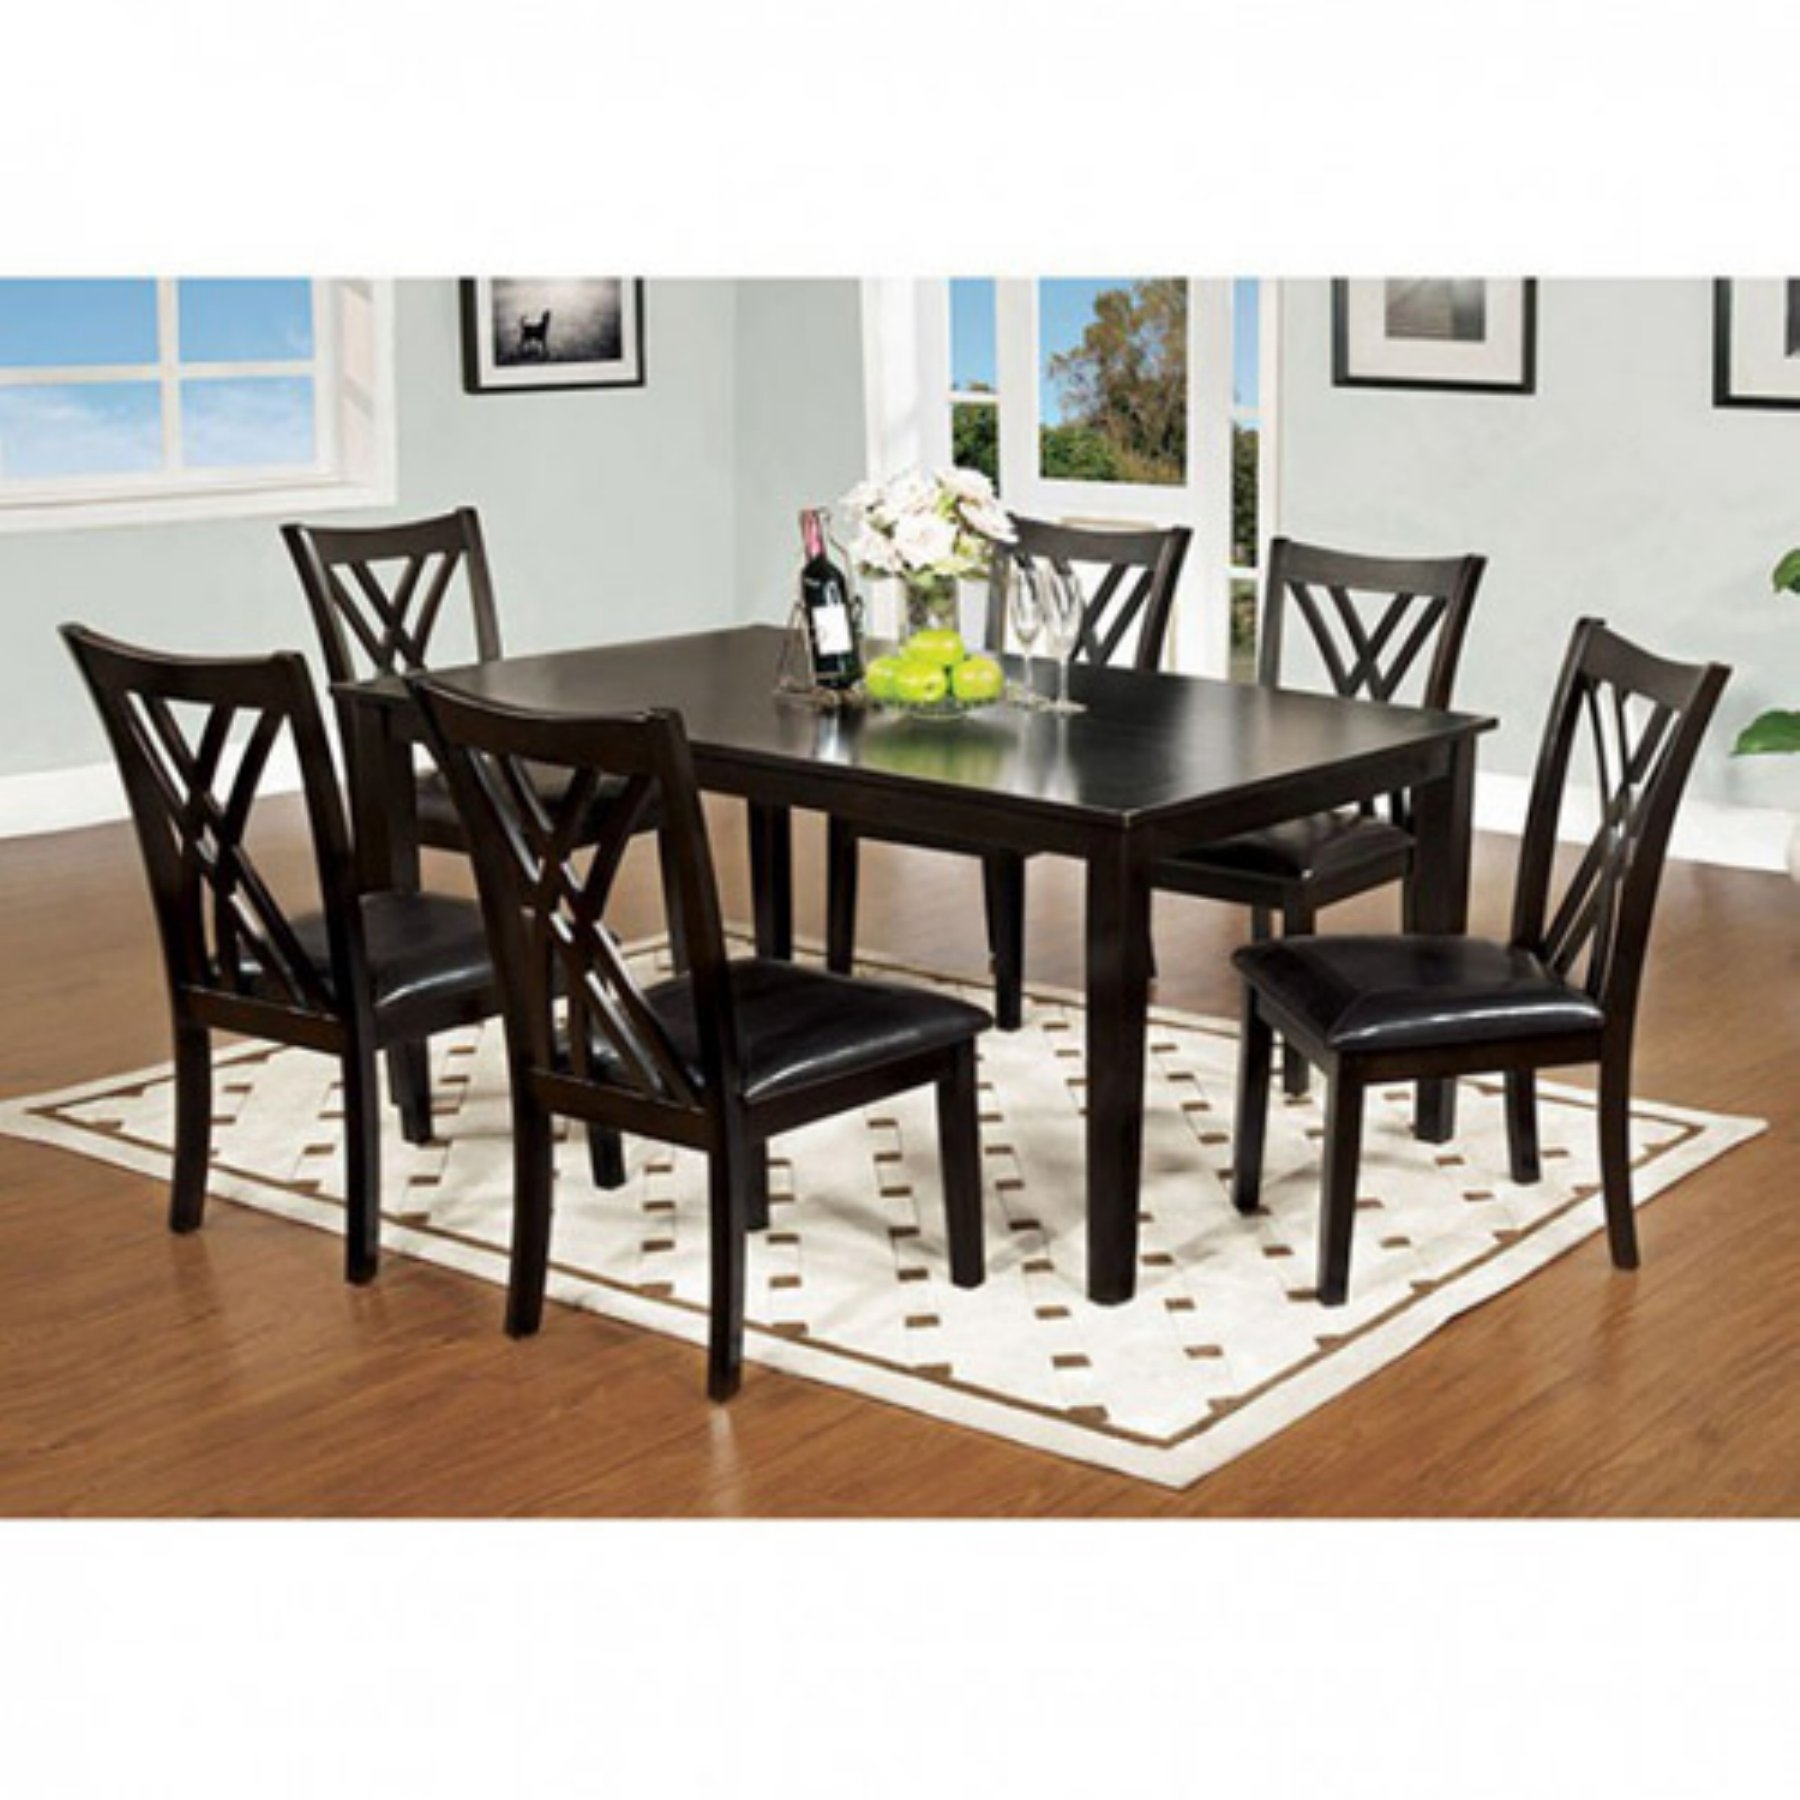 Benzara Springhill Enticing 7 Piece Rectangular Dining Table Set In With 2018 Laurent 7 Piece Rectangle Dining Sets With Wood Chairs (View 10 of 20)